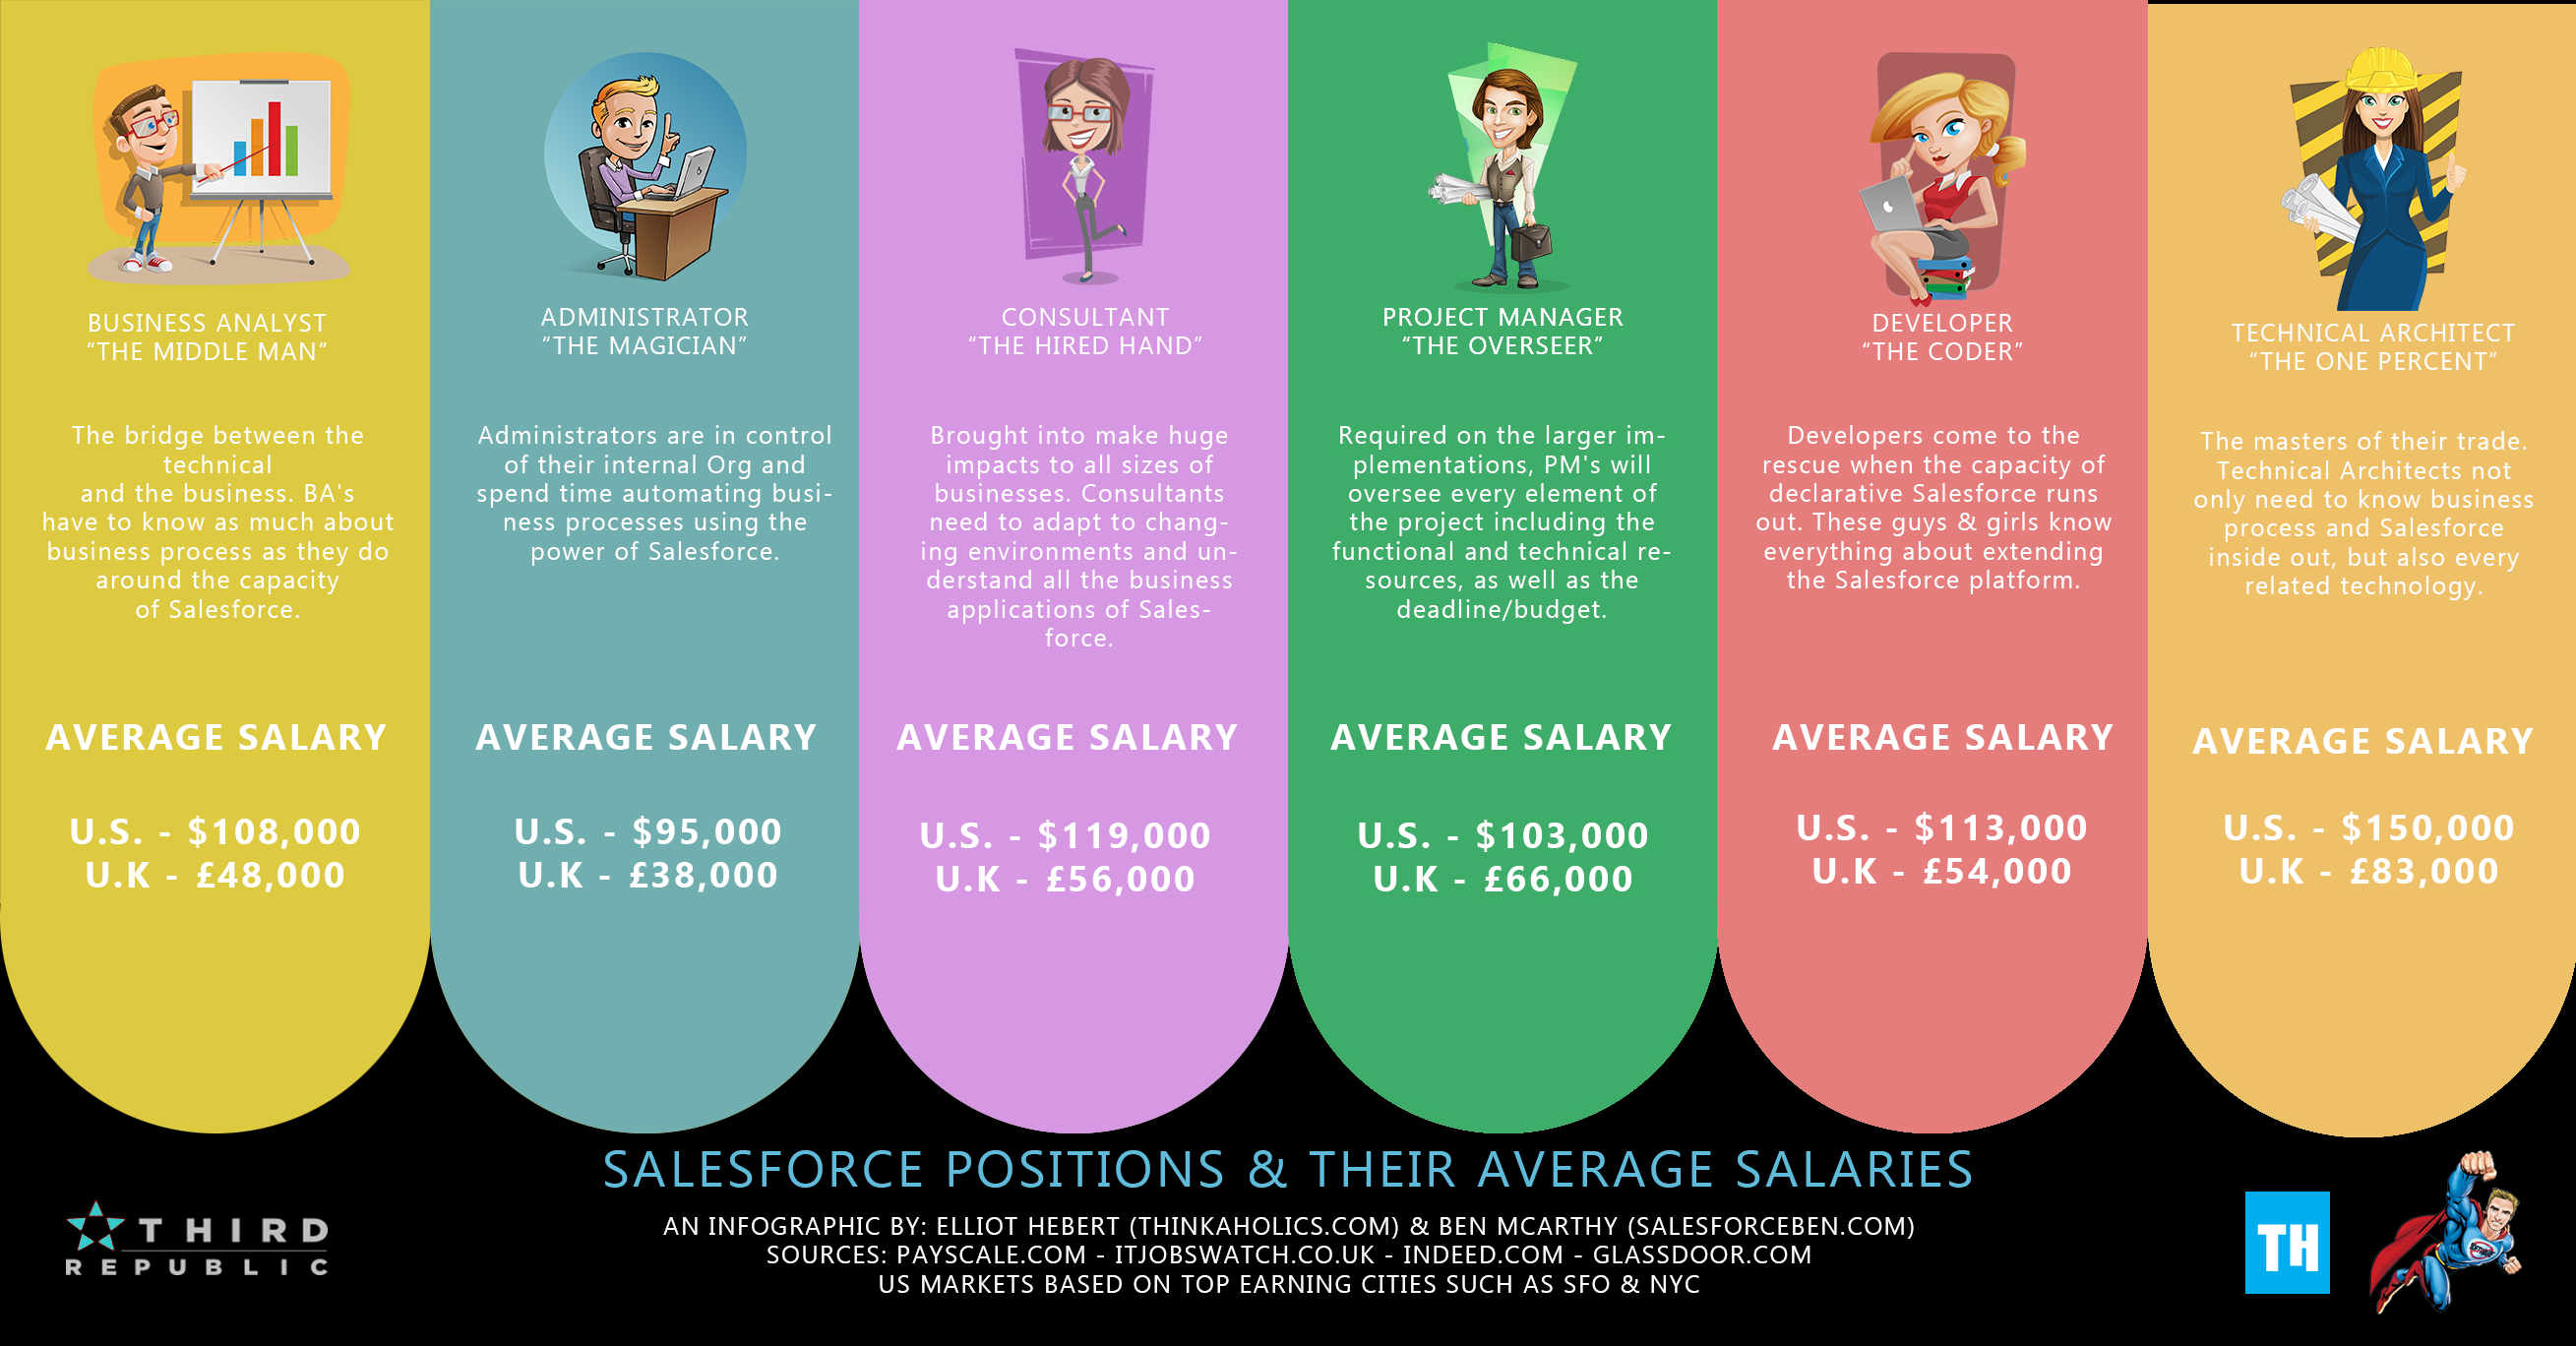 Average Salesforce Salaries 2016 [Infographic]